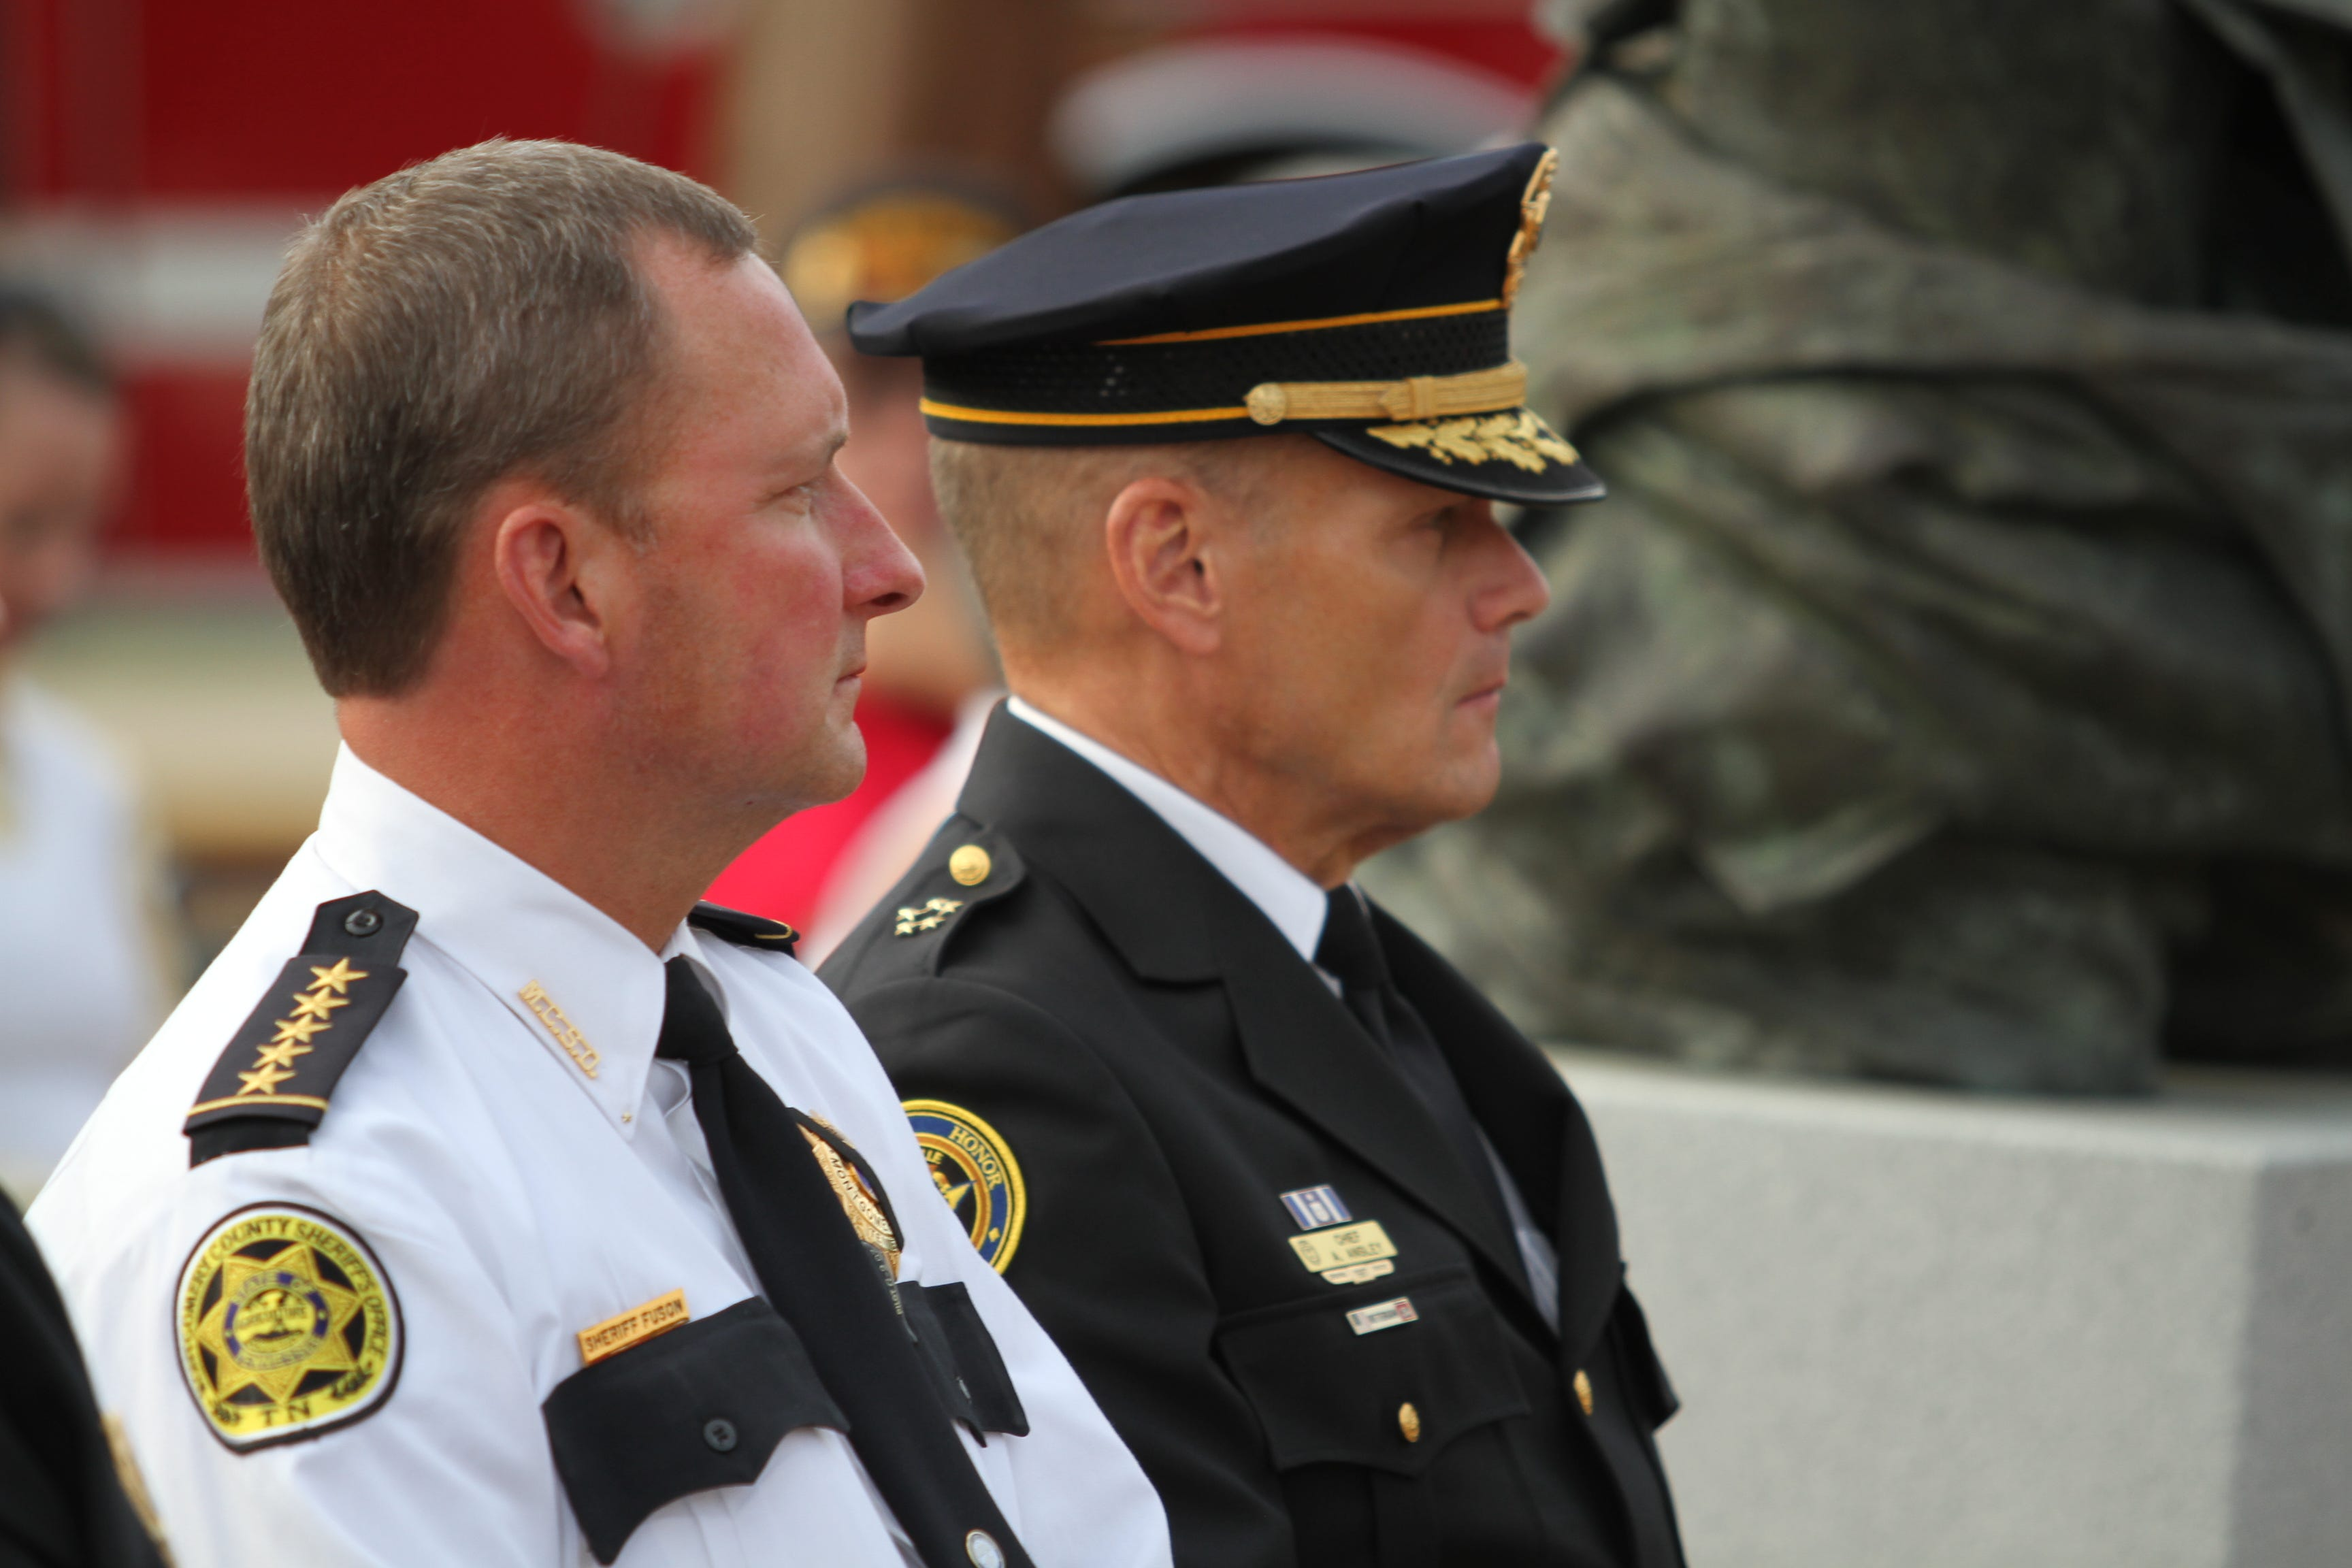 What are the pros and cons of consolidating police agencies